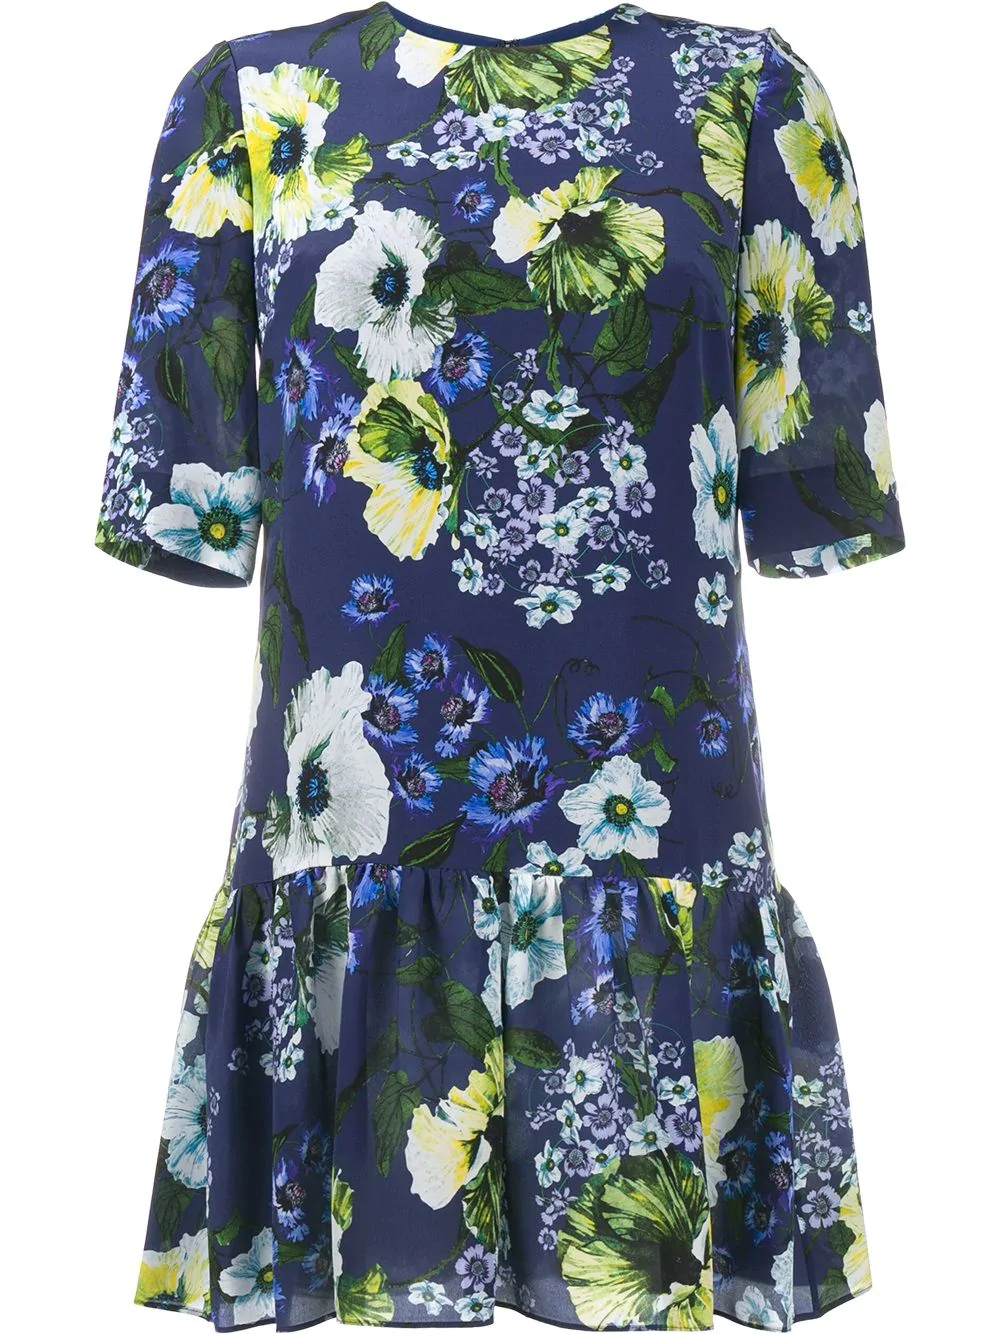 06ad18b3a767 Erdem Floral Print Silk Dress - Blue | ModeSens